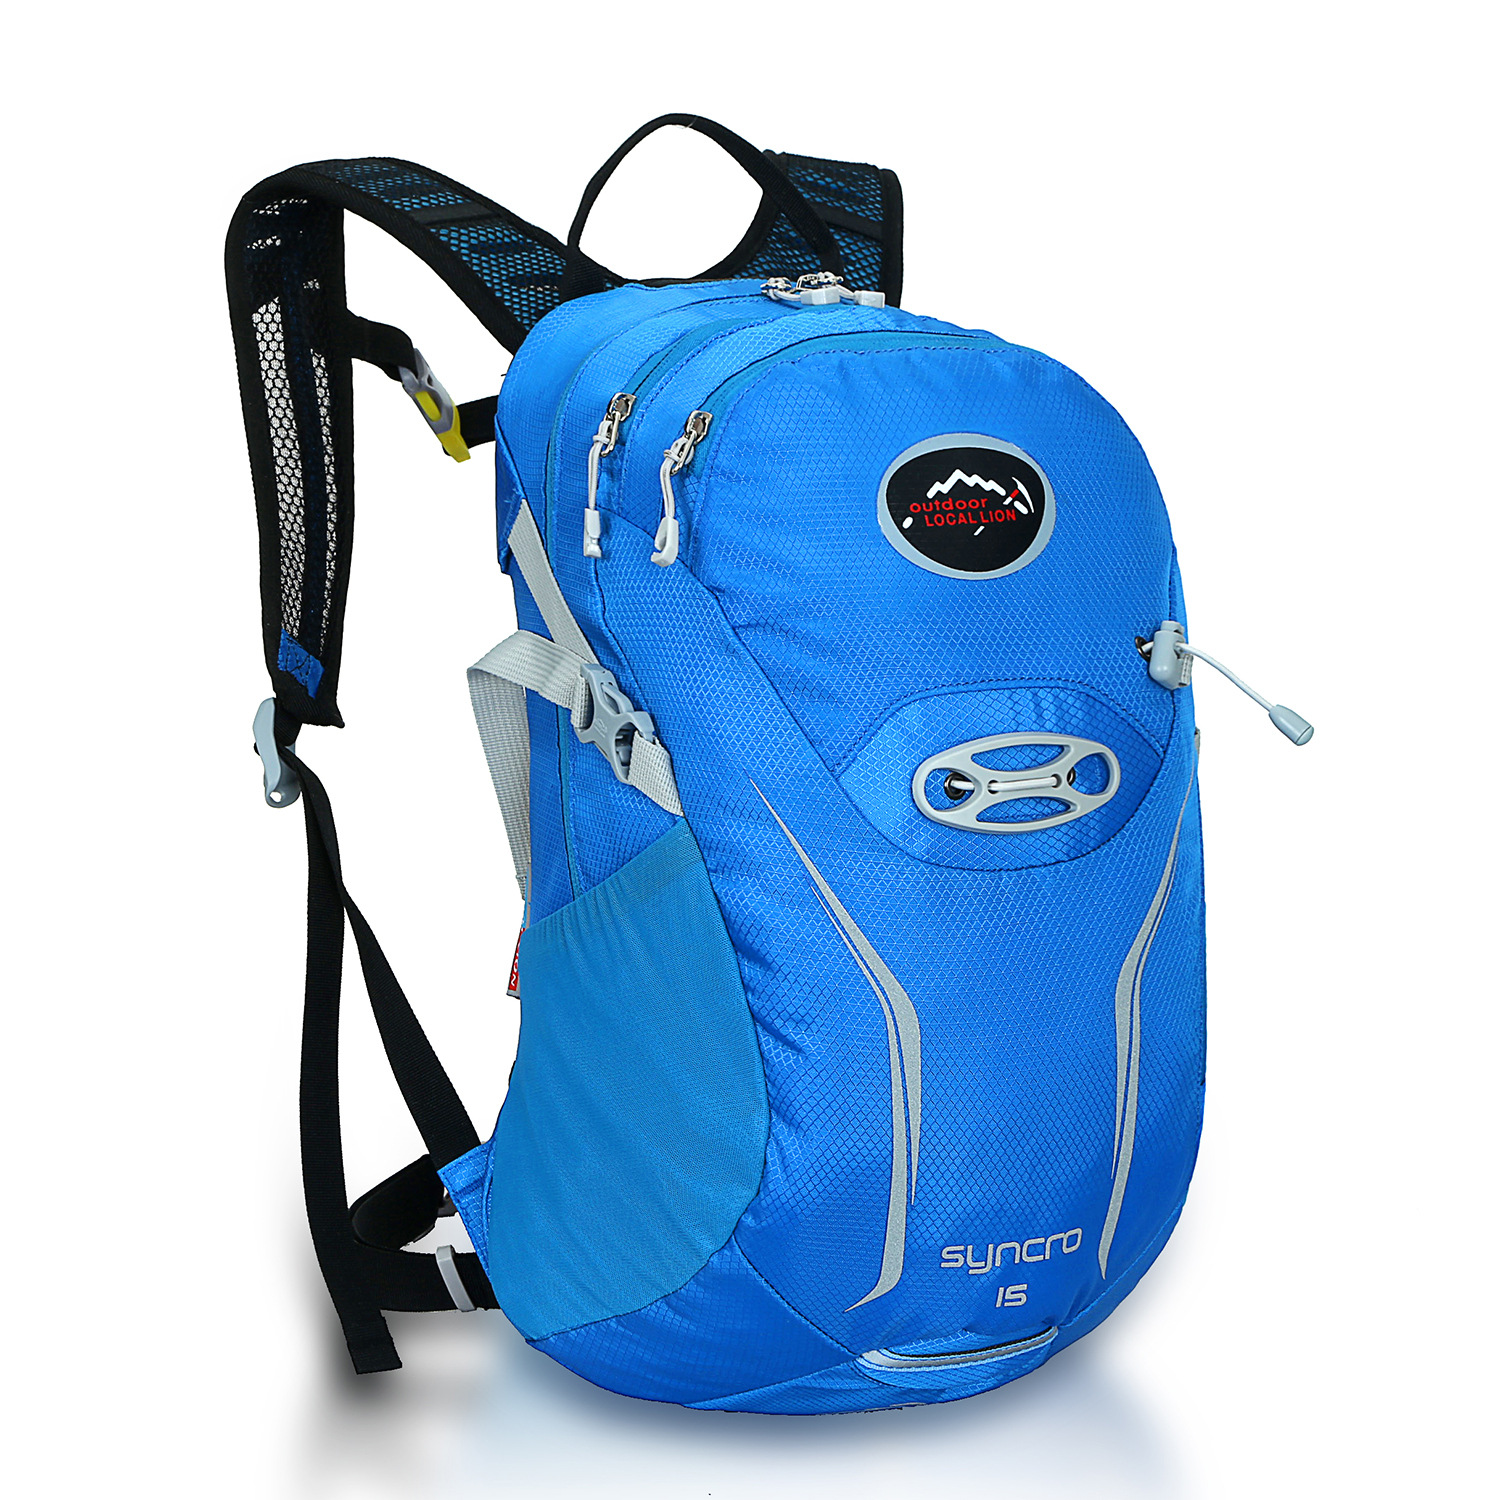 Capacità Impermeabile Tempo Color purple Fitness E blue Viaggio Grande Da Green Color Di Sacchetto grass orange Campeggio Libero B144 Alpinismo Trekking Esterna red Color Black green dark Color Green Ciclismo Zaino Sport 25l Color R5qAwxnIZv